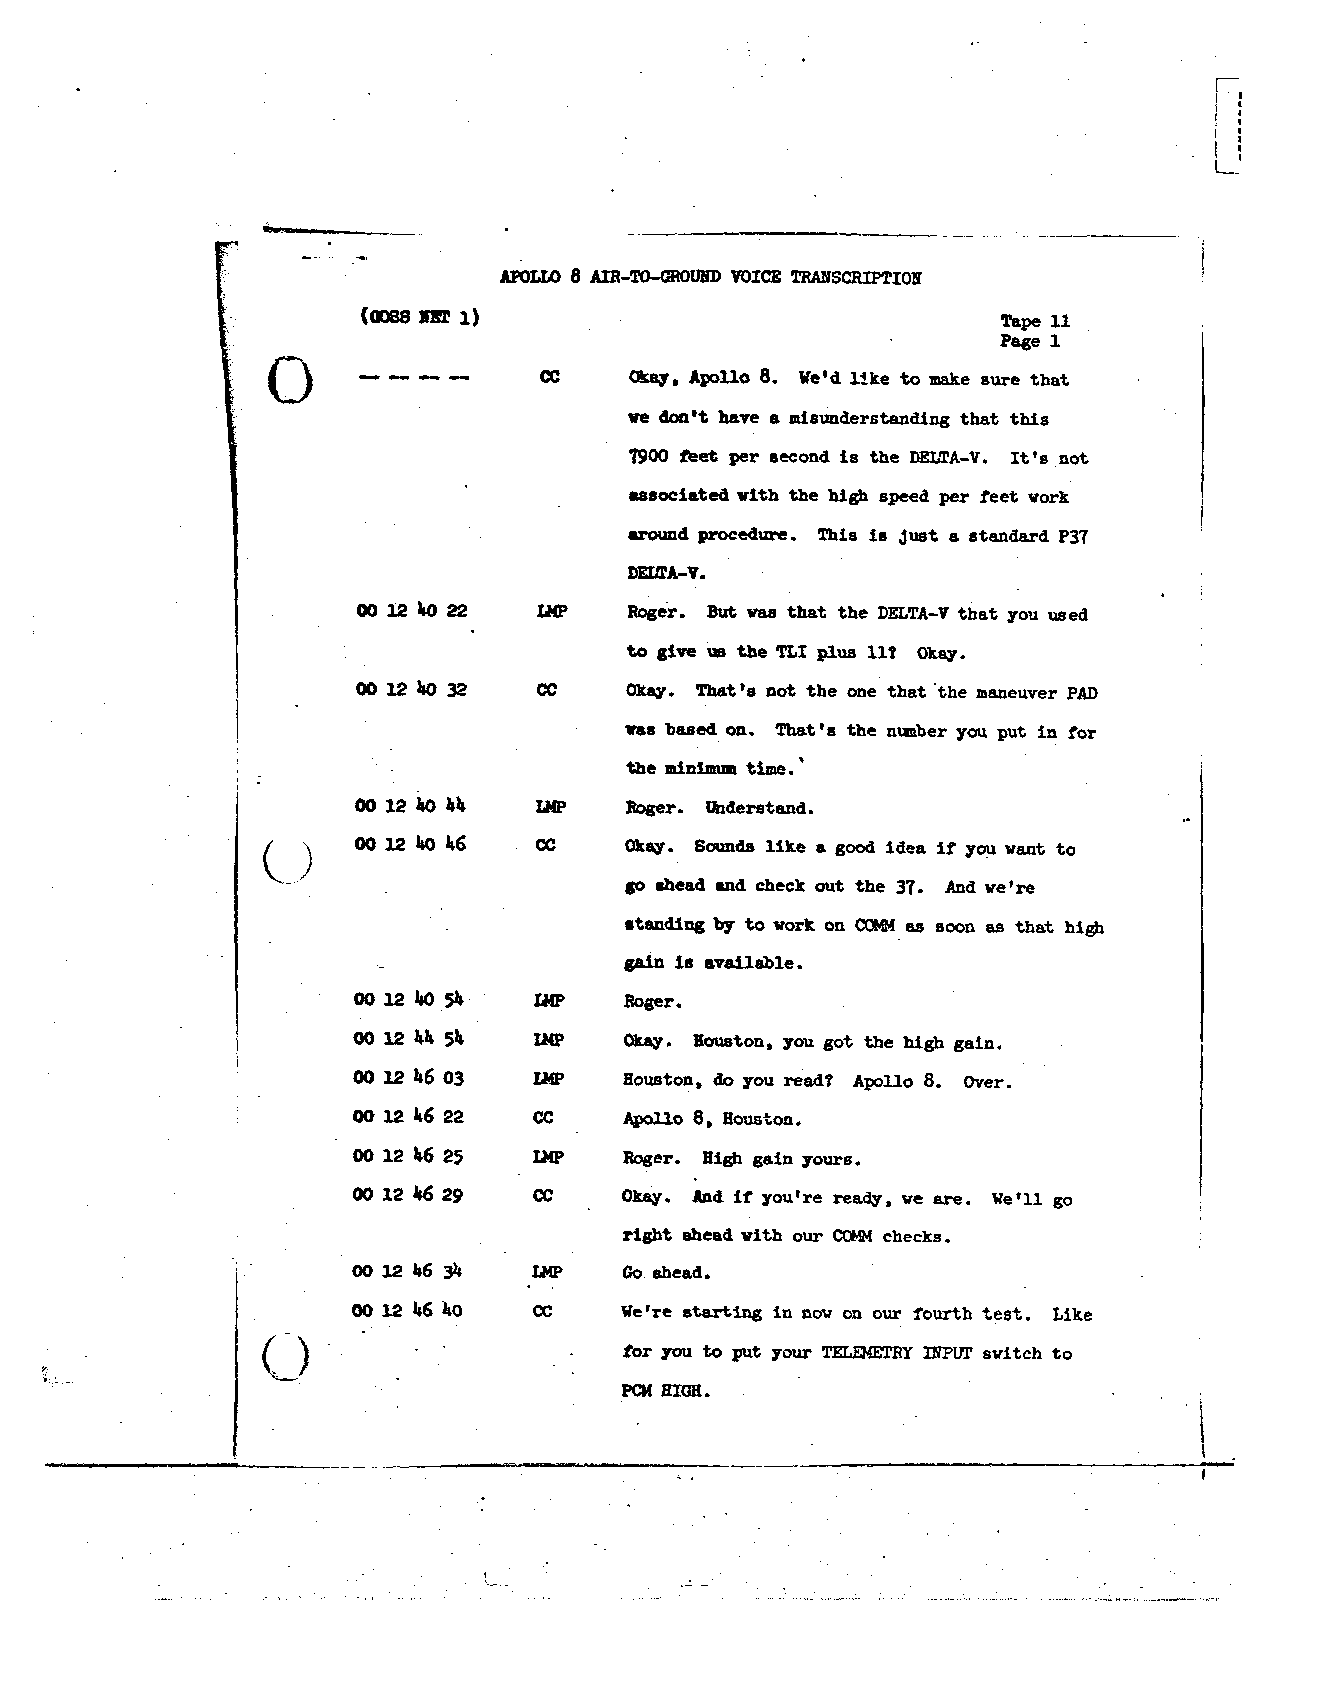 Page 103 of Apollo 8's original transcript